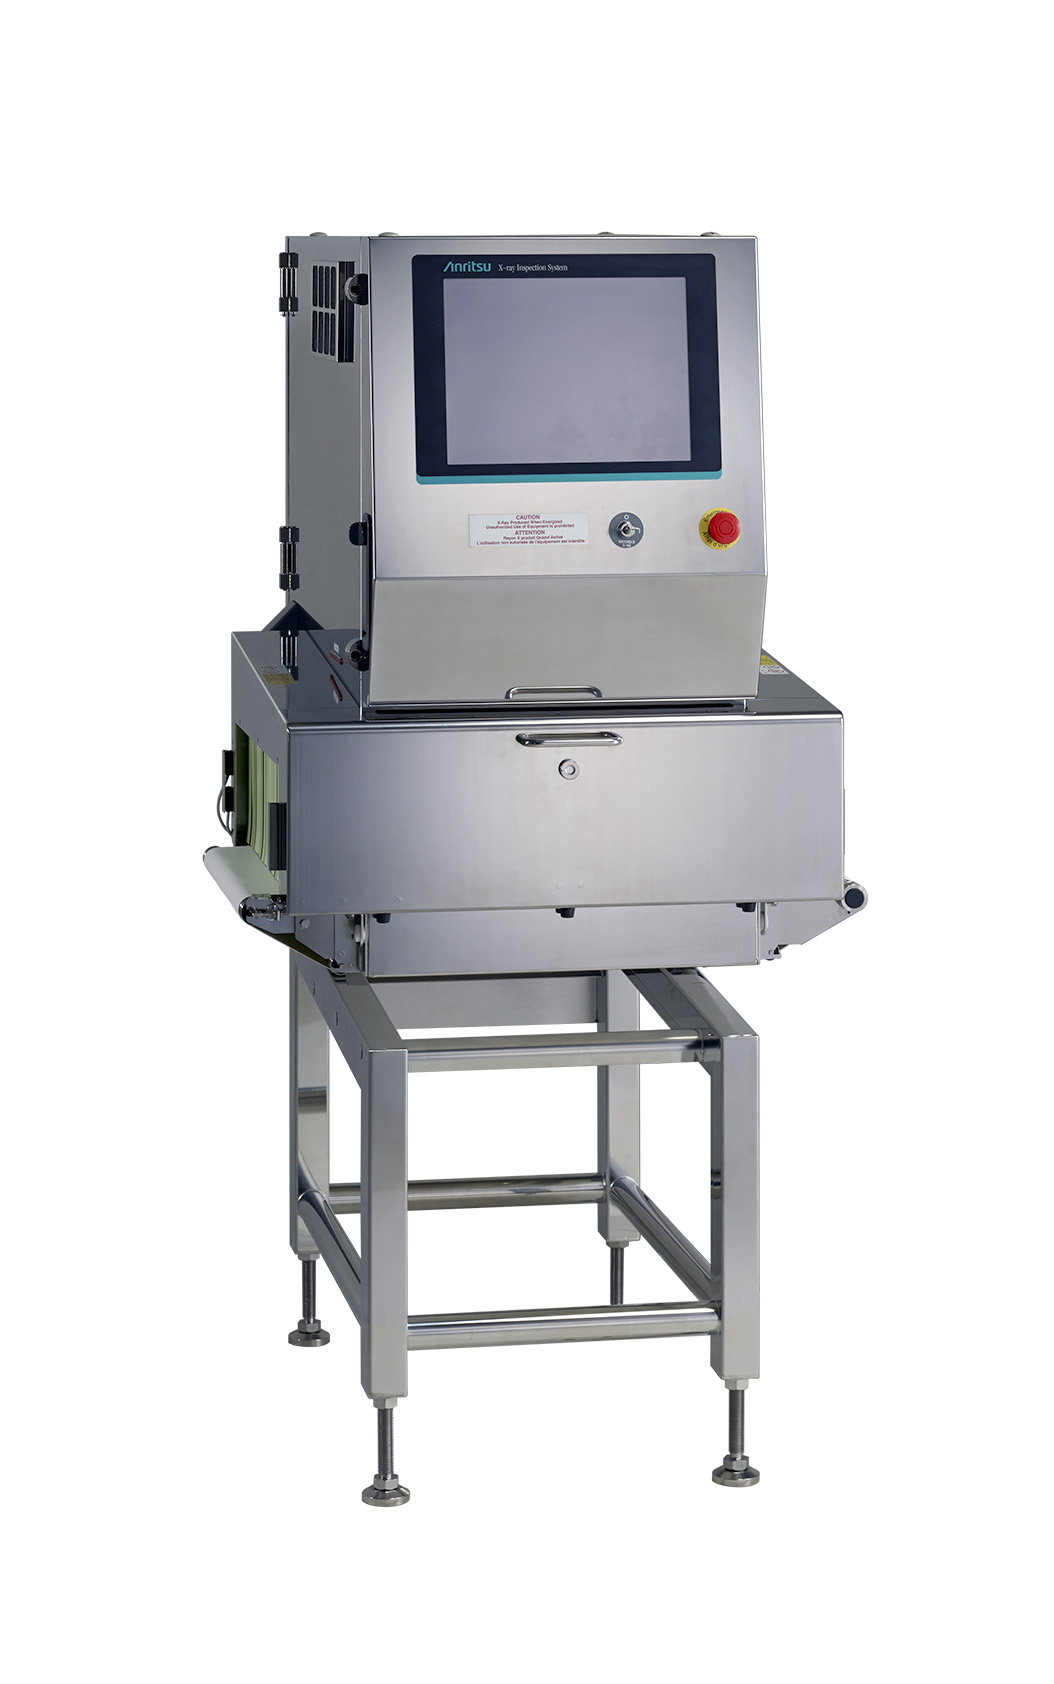 KD7414KUP with screen